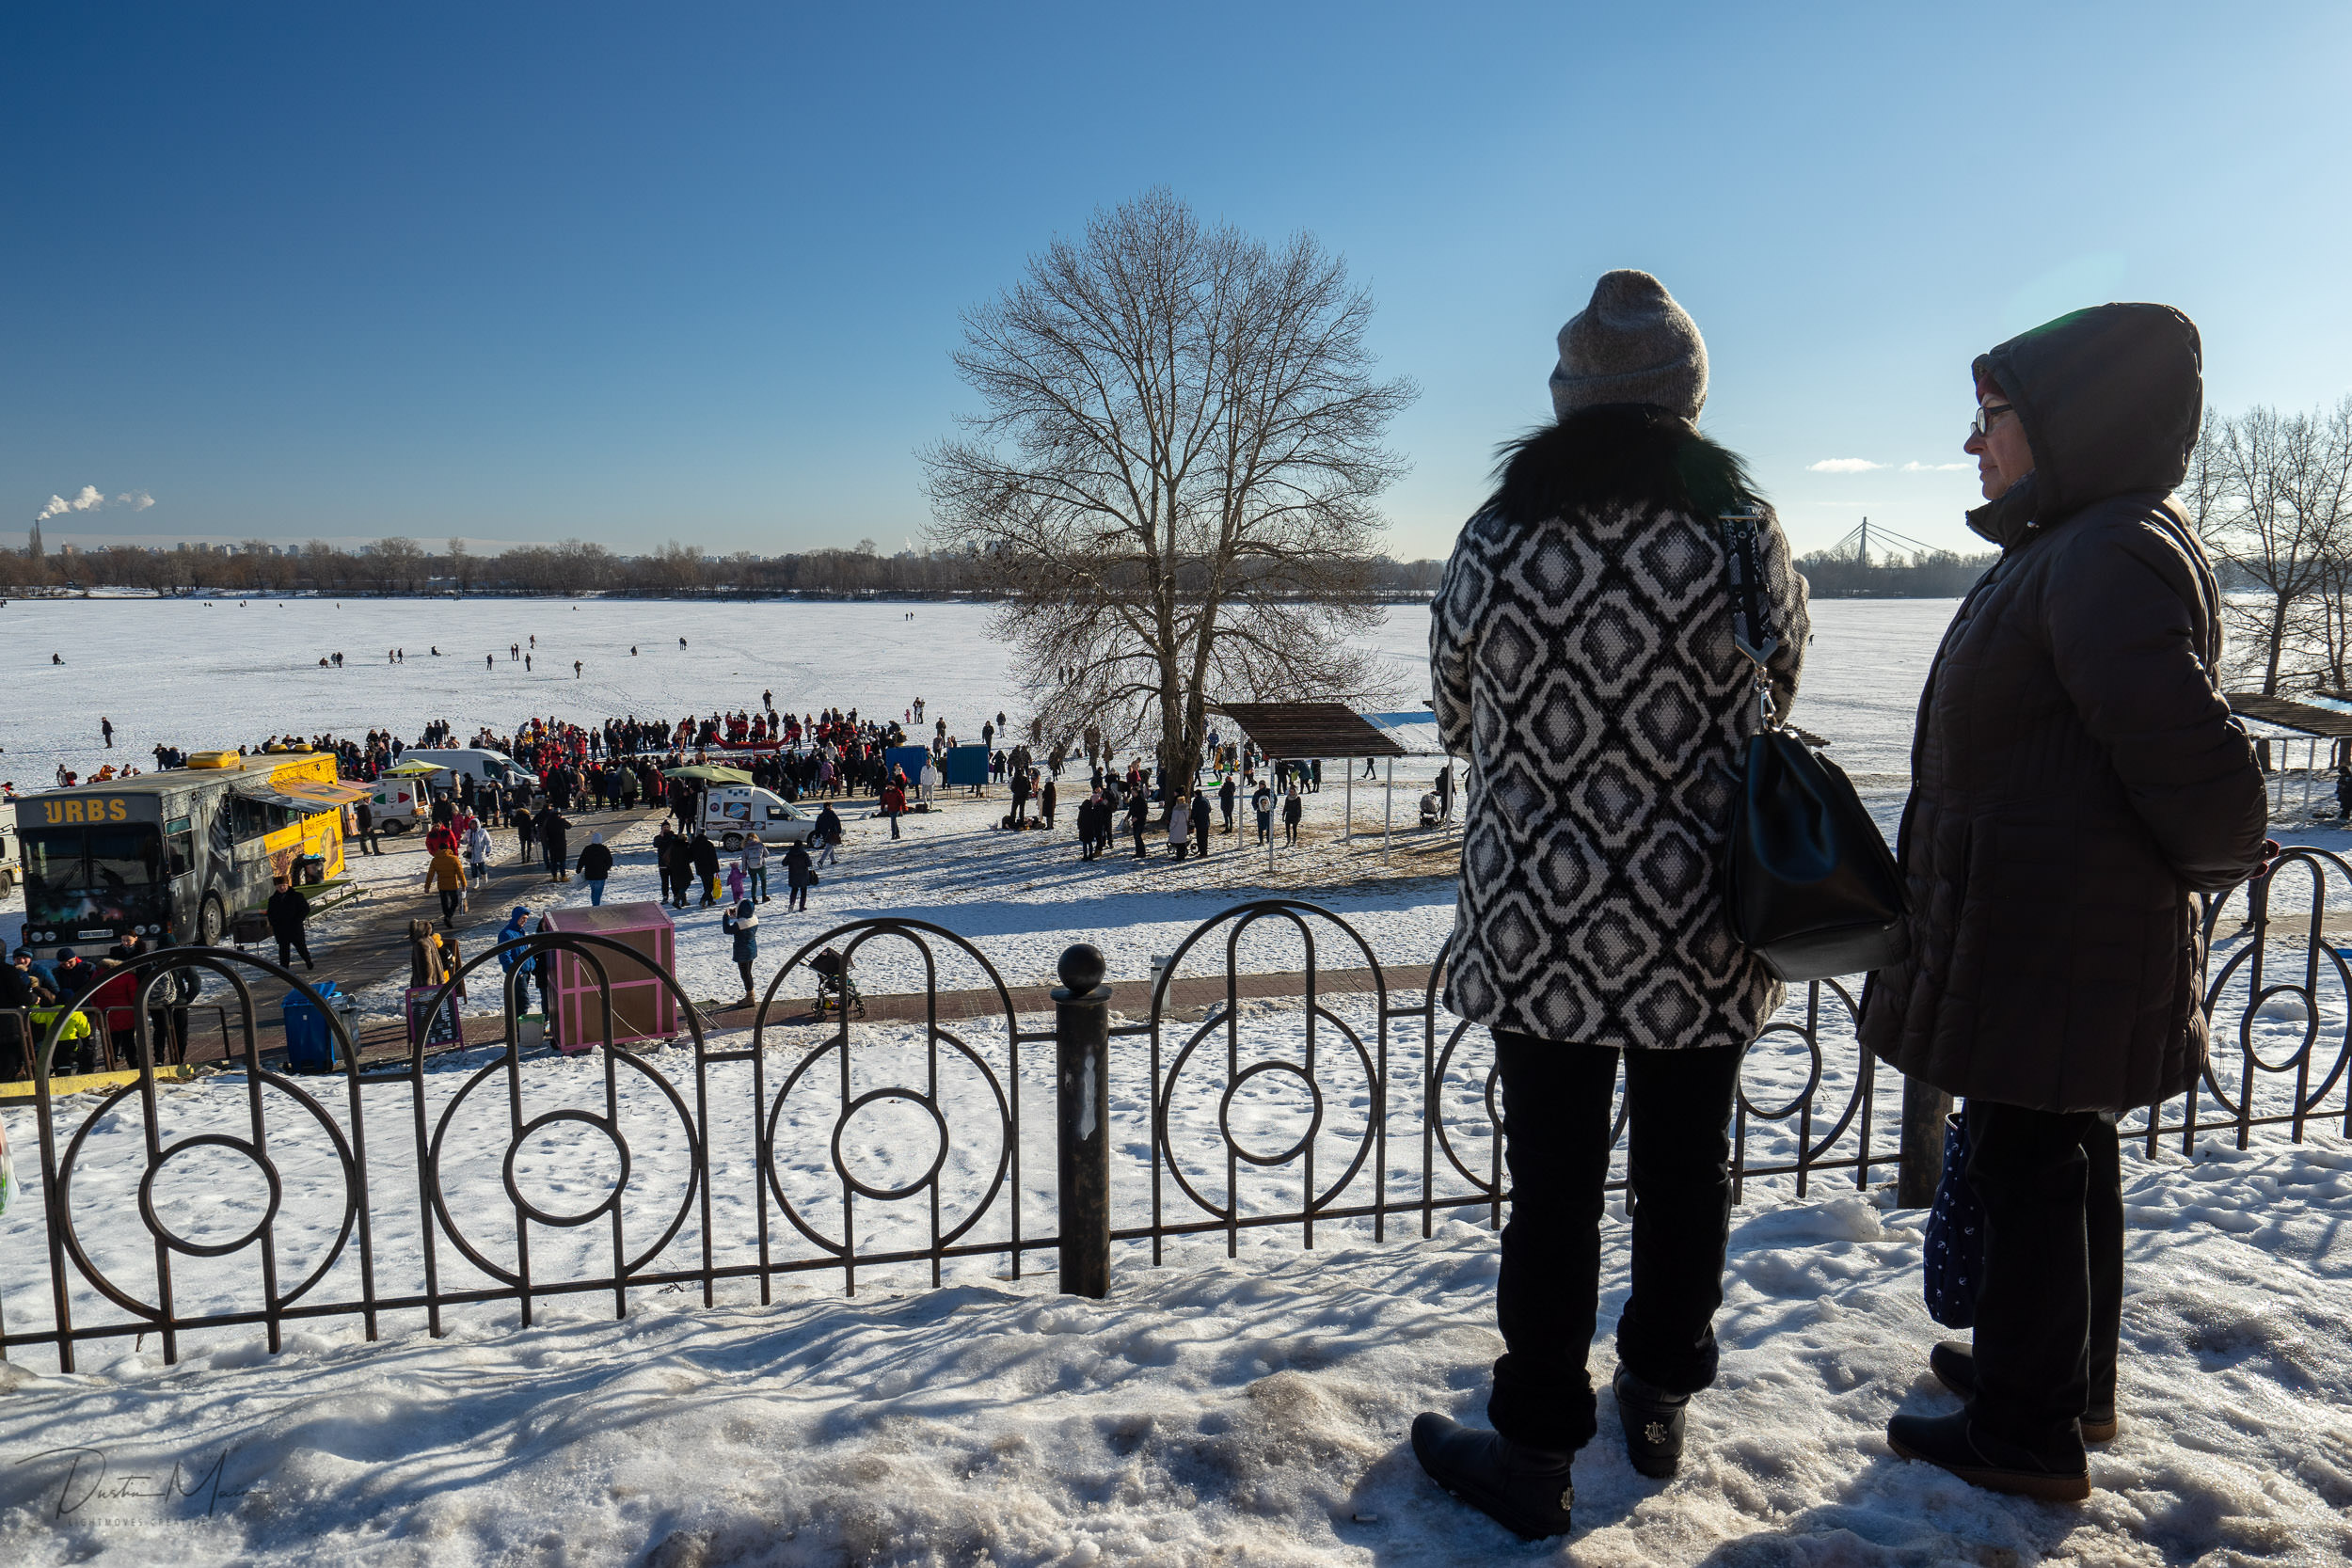 Looking out over the Dnieper river during the Epiphany gatherings in Kyiv. © Dustin Main 2019